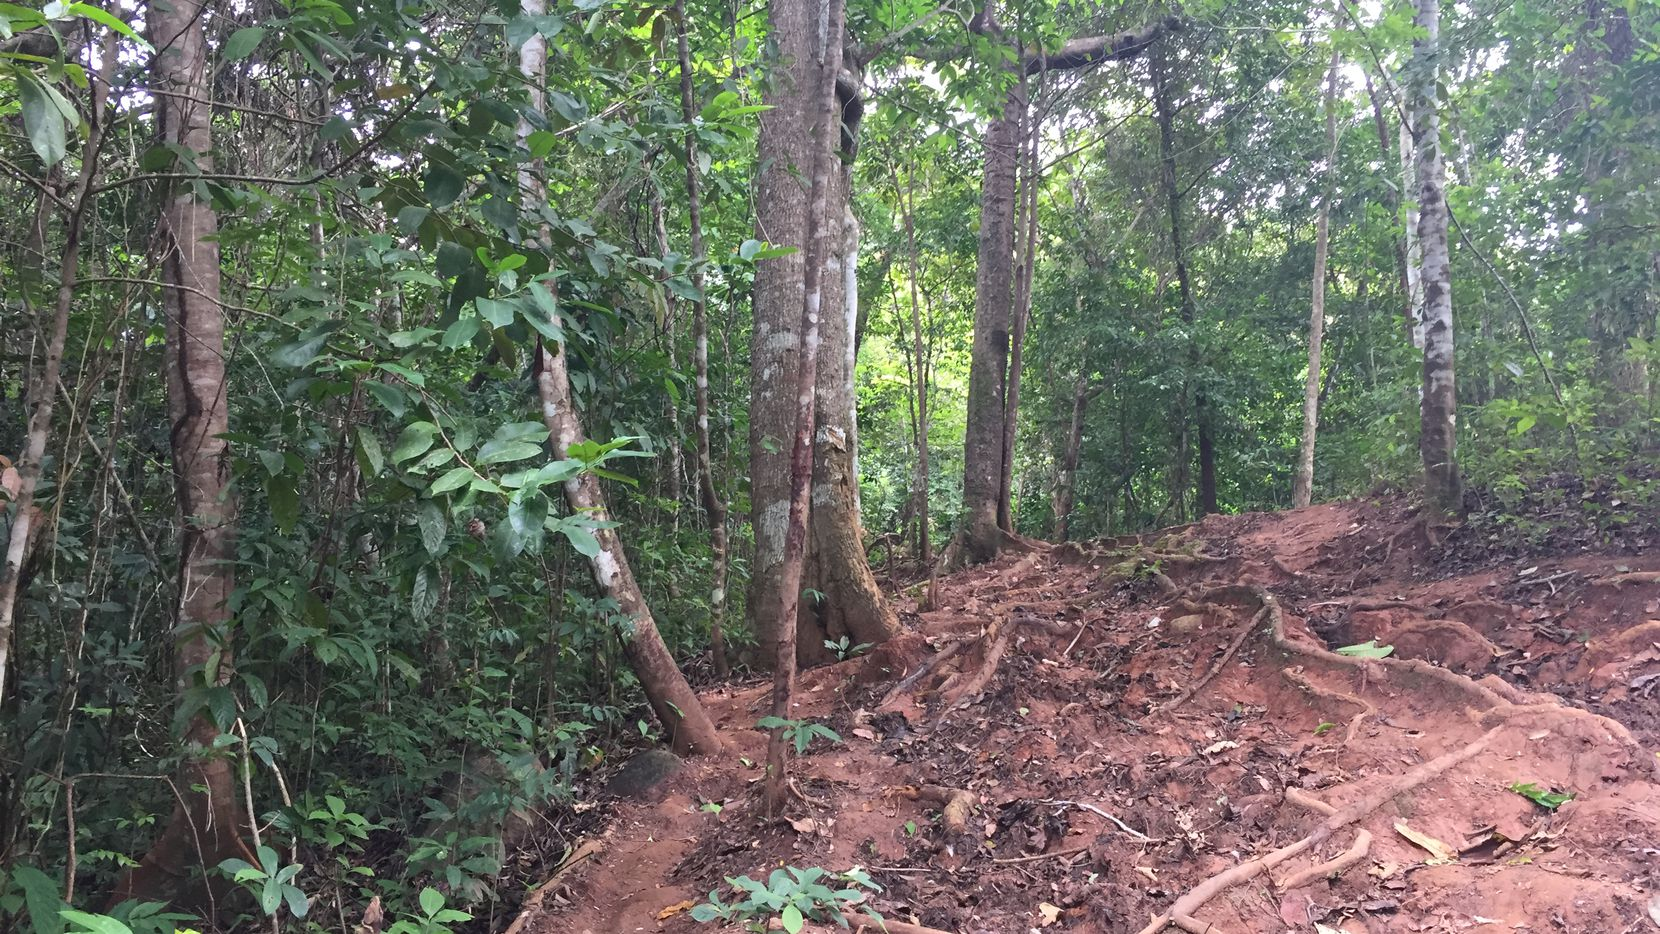 Some migrants reach Panama City by hiking through the Darien jungle, a treacherous part of a long journey to the U.S.